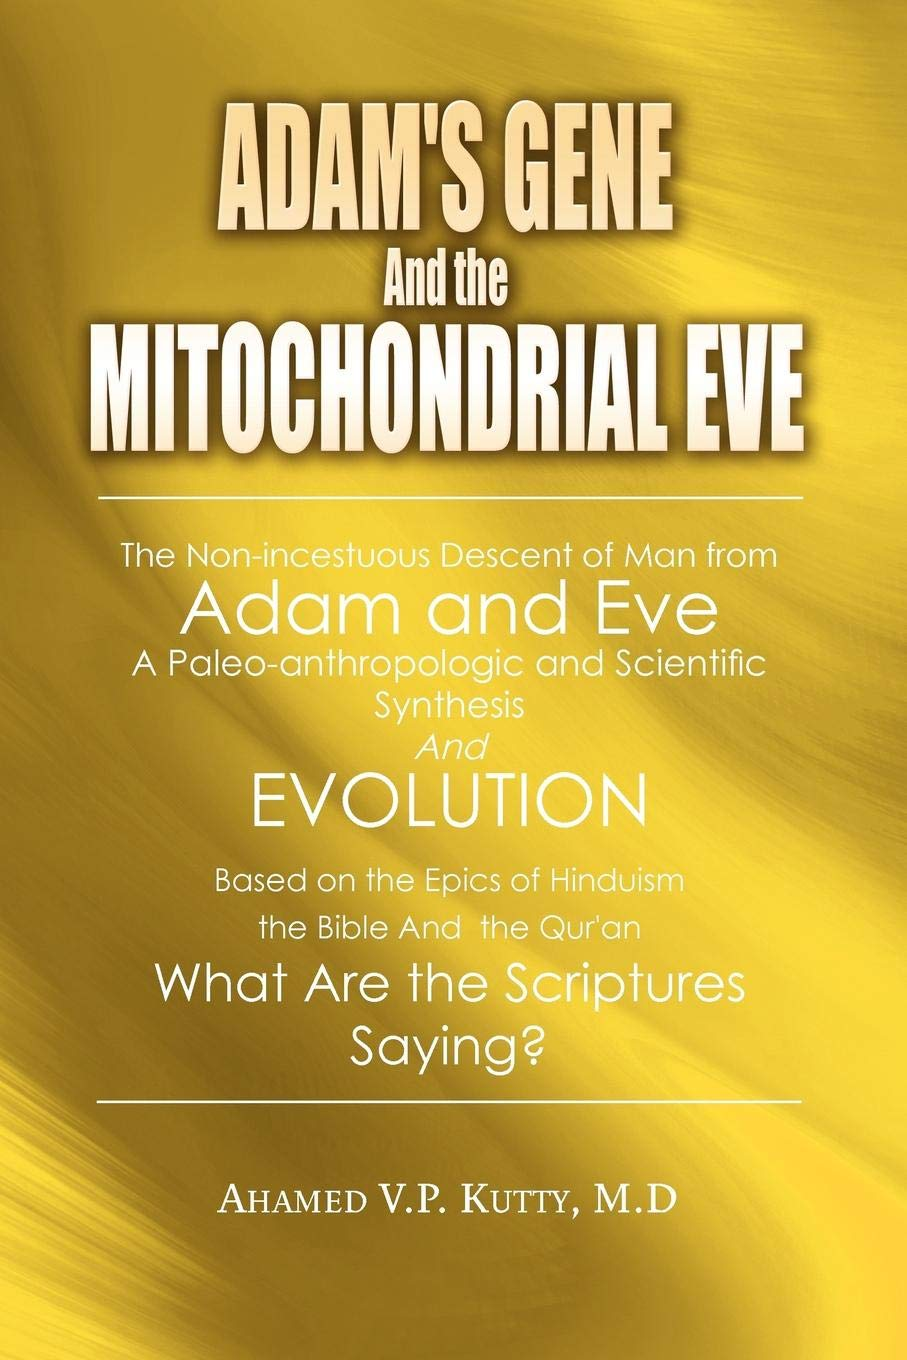 Adam's Gene and the Mitochondrial Eve: A Nonincestuous